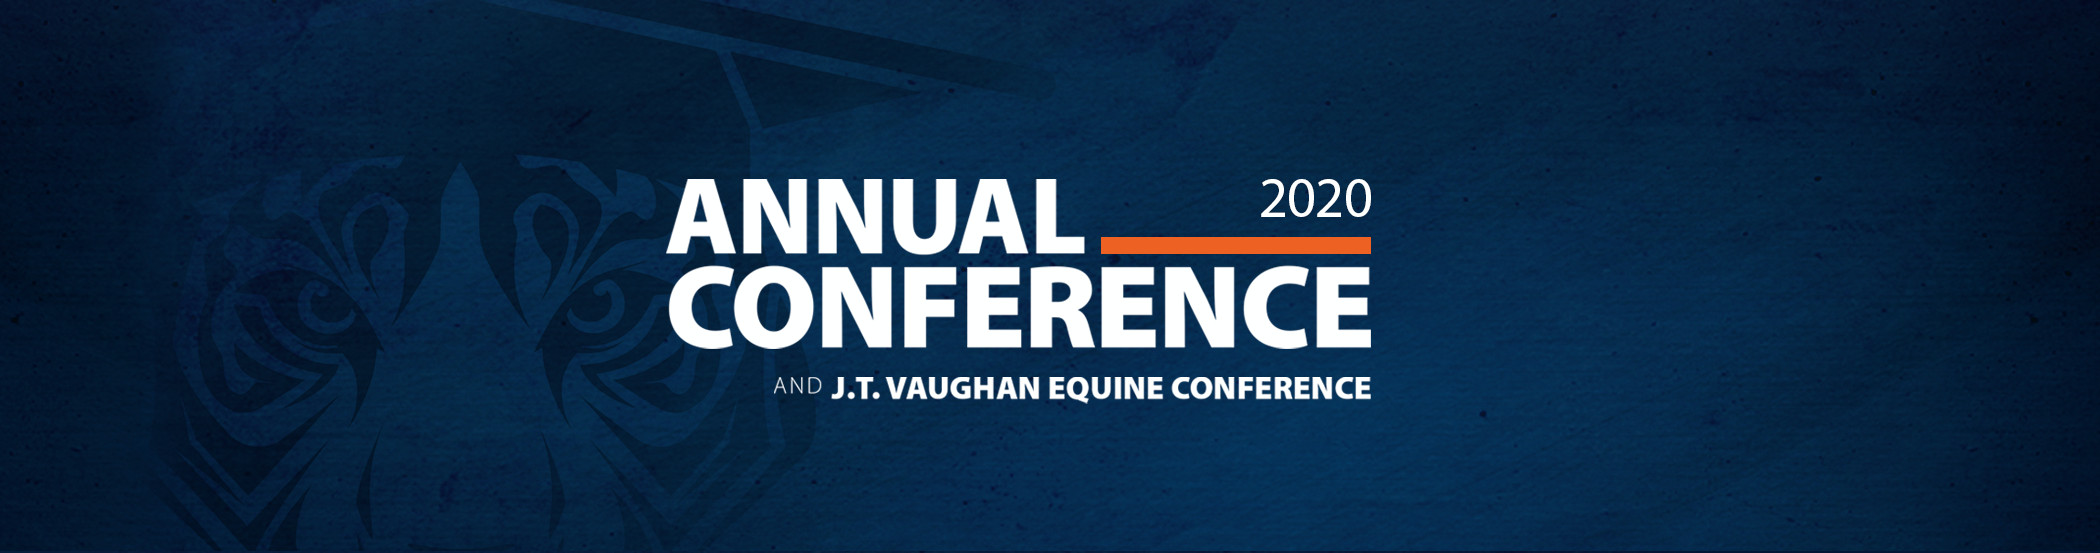 2020 Annual Conference and the J.T. Vaughn Equine Conference